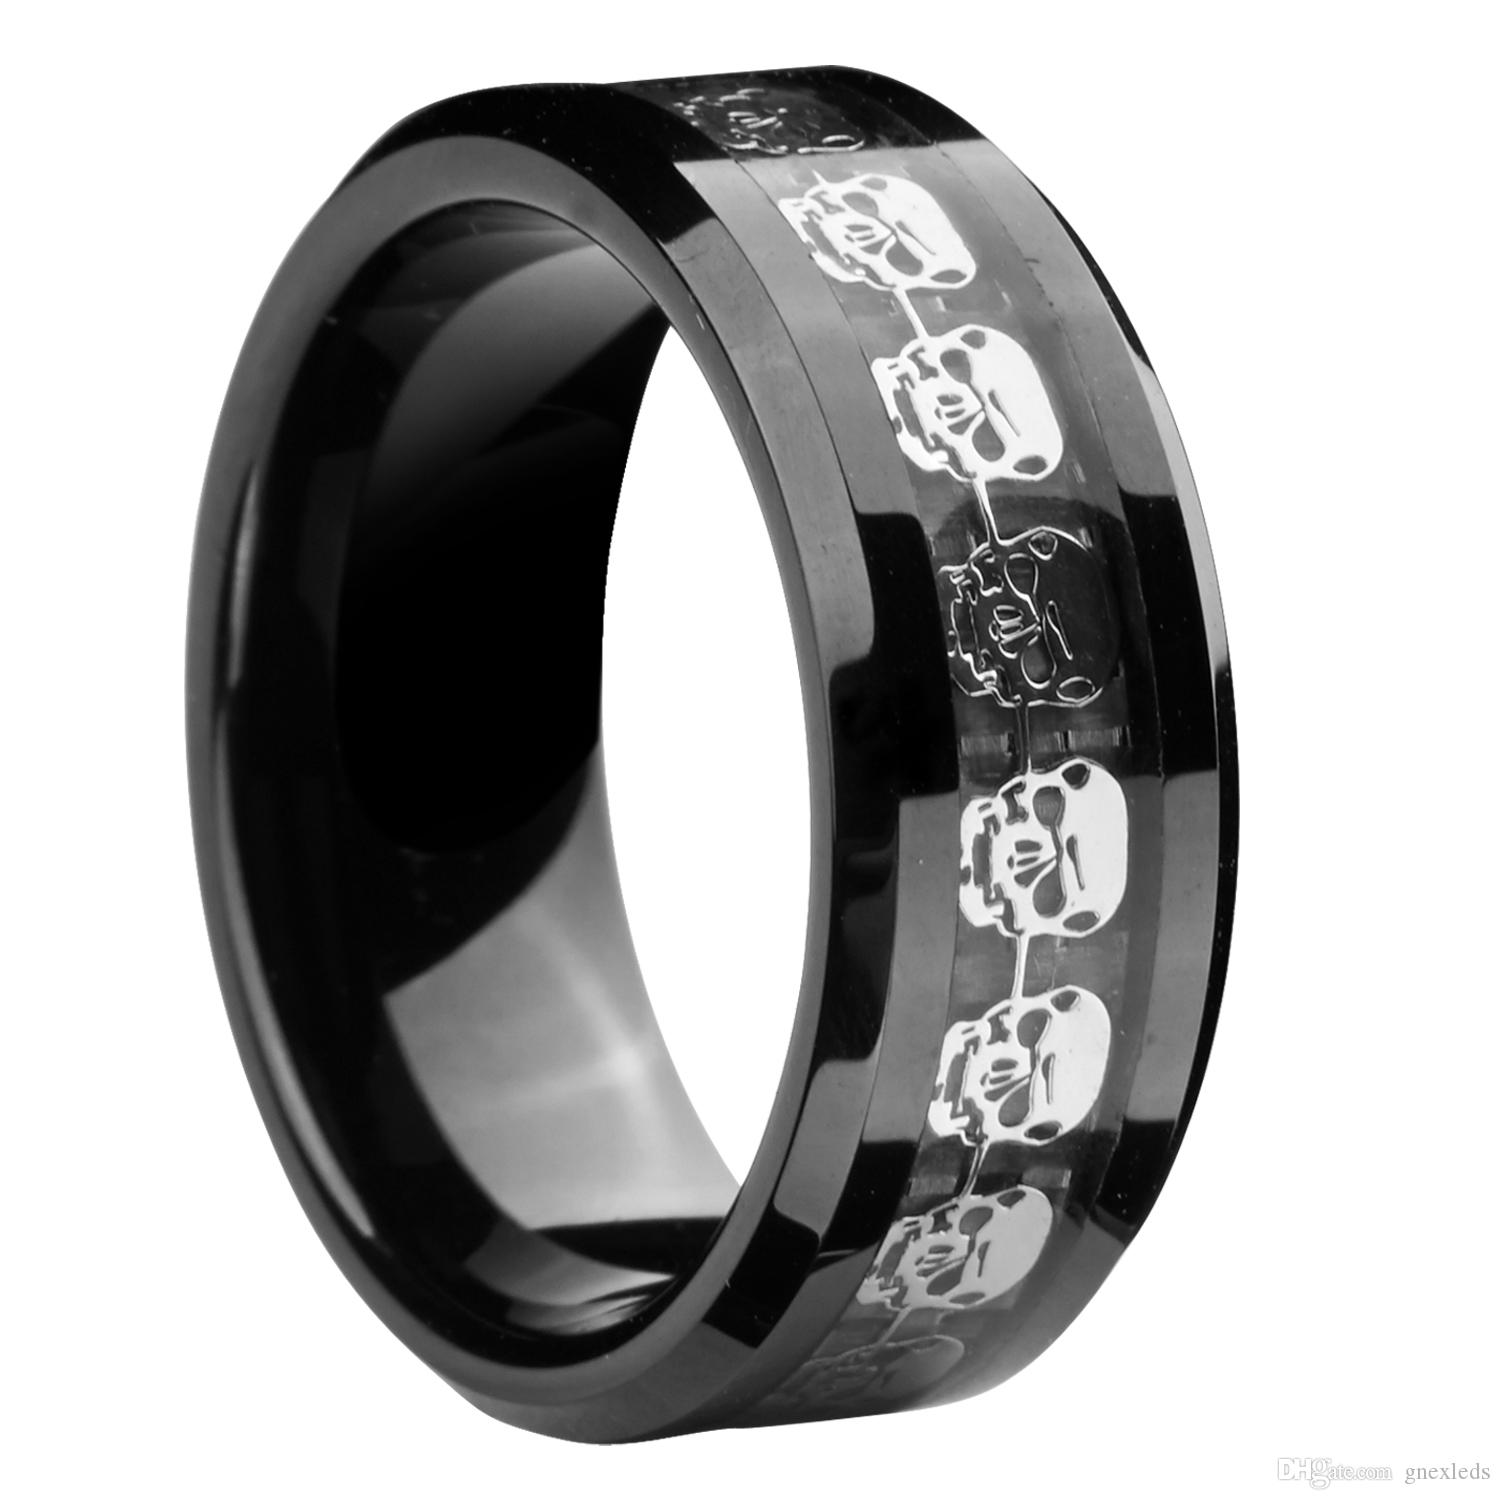 2019 Queenwish 8mm Infinity Black Tungsten Carbide Ring Mens Silver Skull Skeleton Inlay Wedding Band Promise Rings Matching Men Jewelry From Gnexleds: Black Tungsten Wedding Band Cross At Websimilar.org